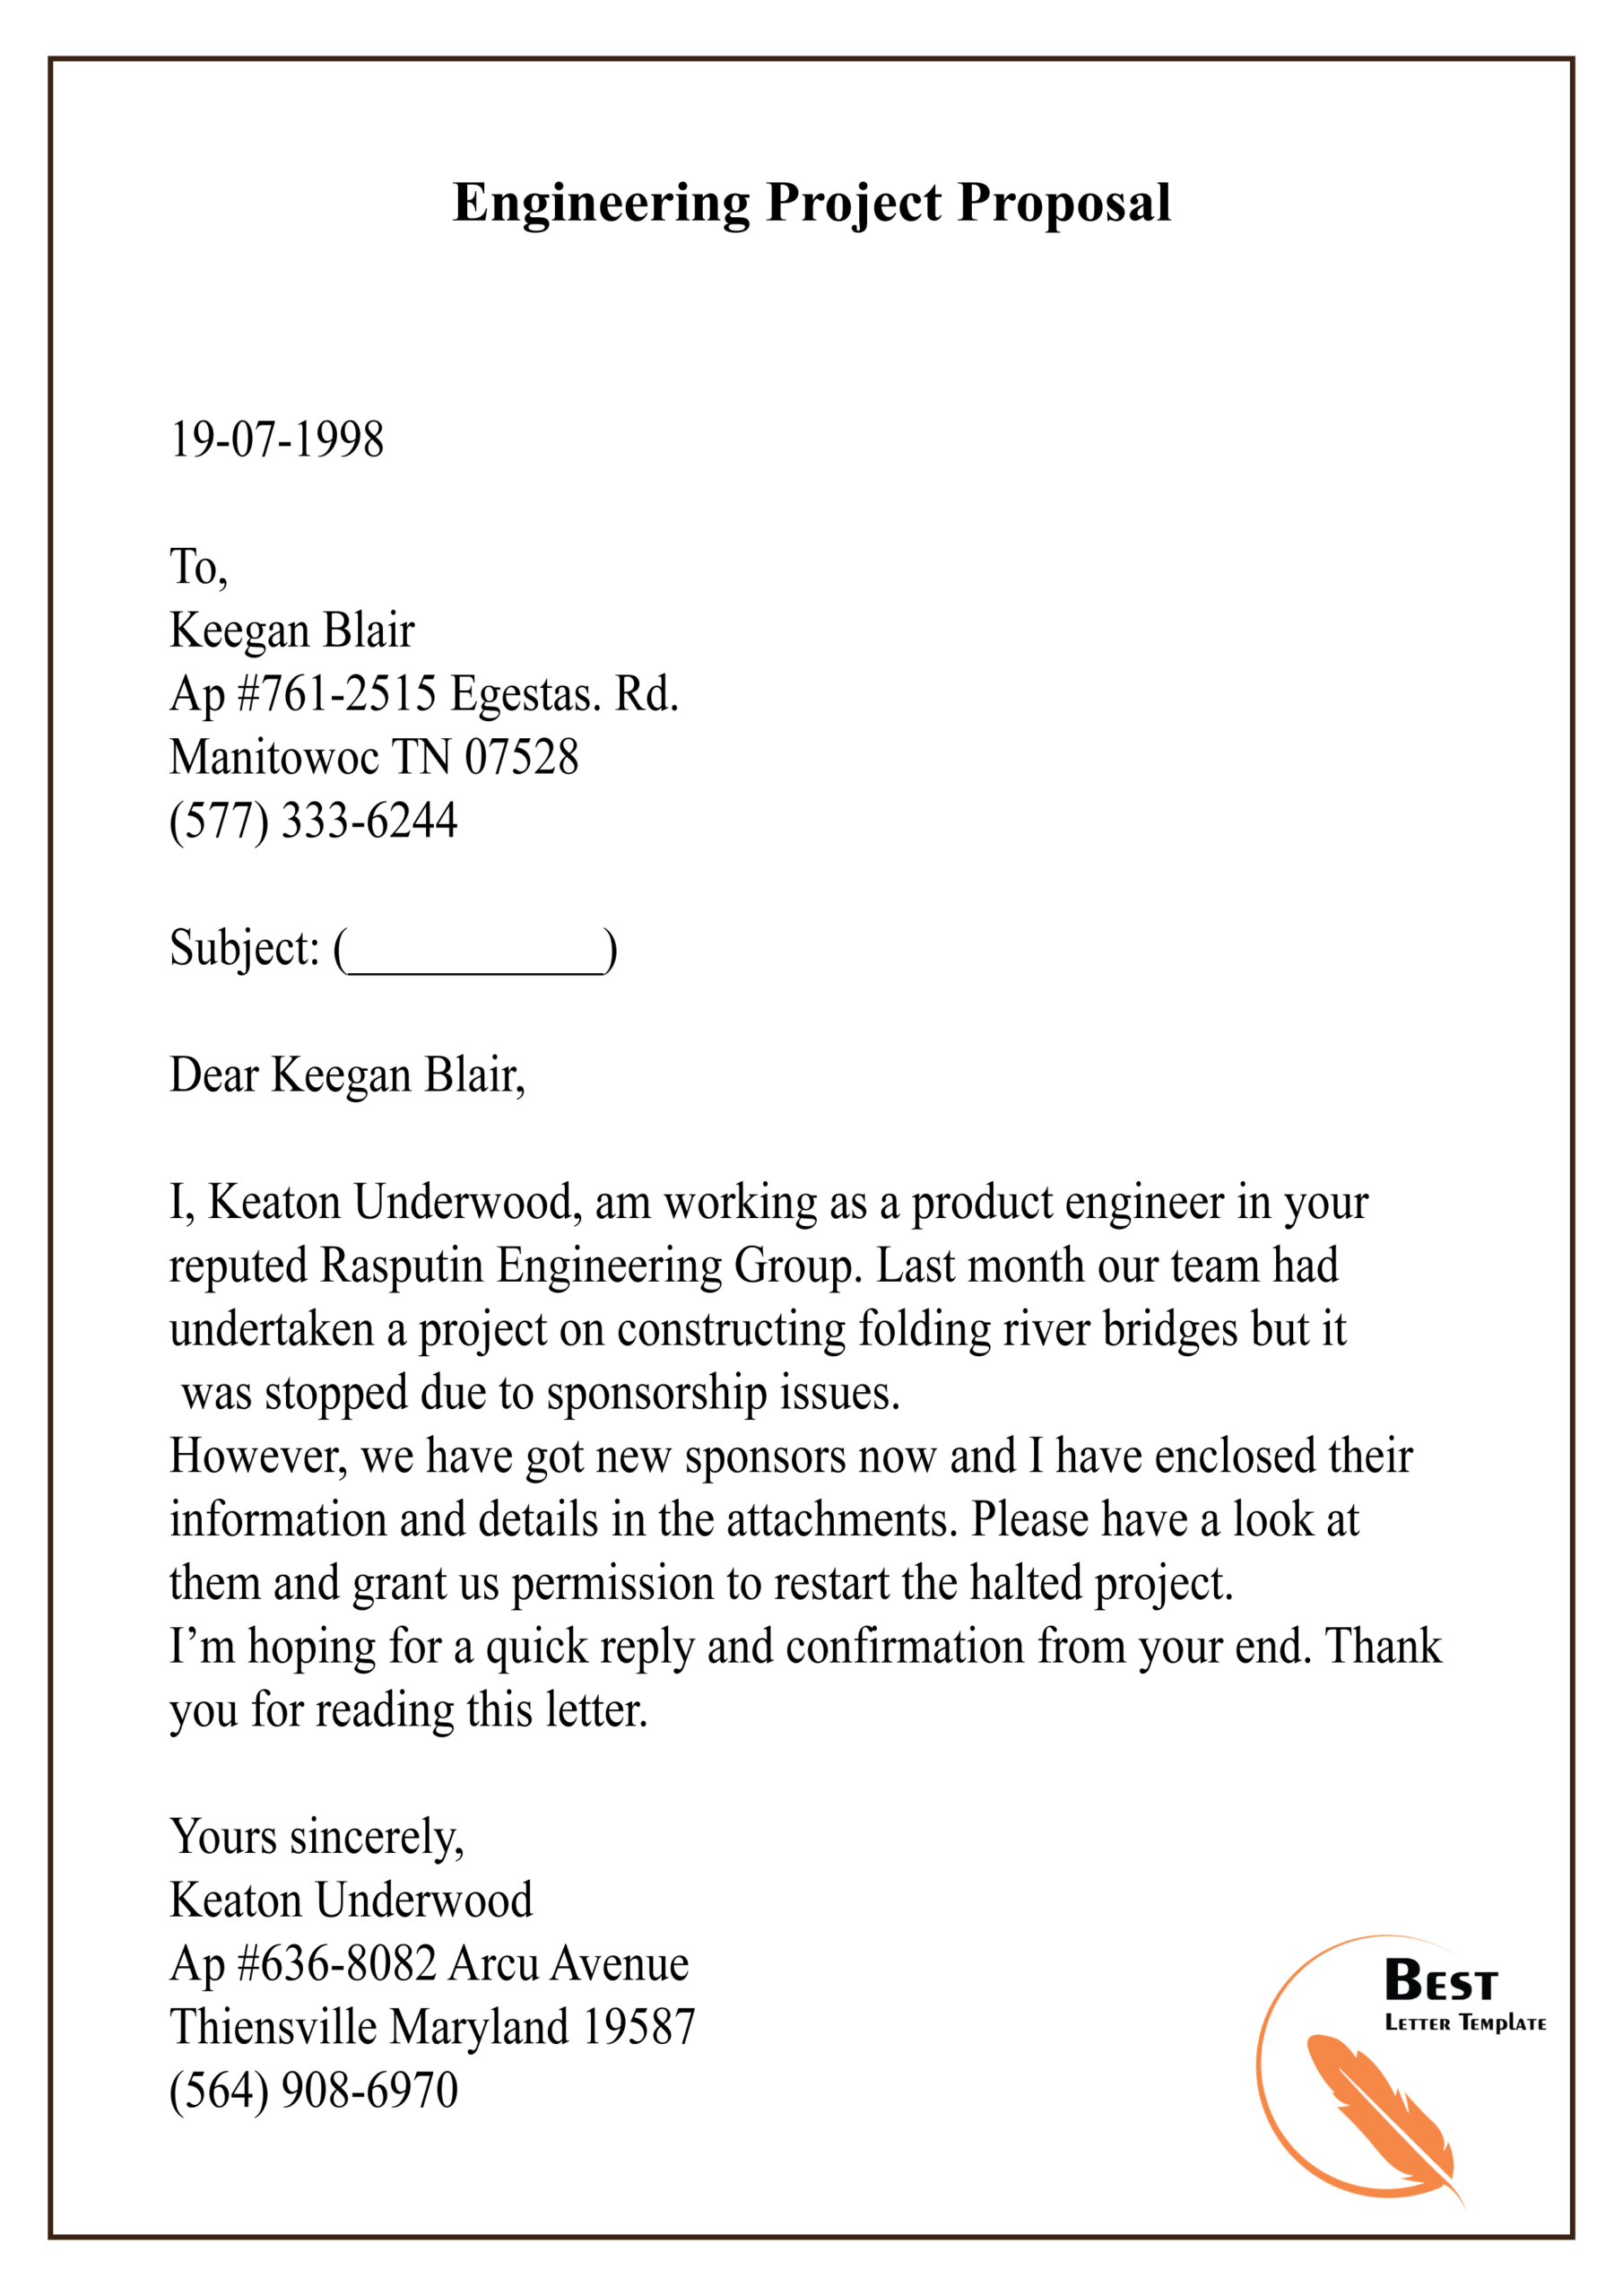 Engineering Project Proposal01 Best Letter Template Regarding Printable Engineering Proposal Template